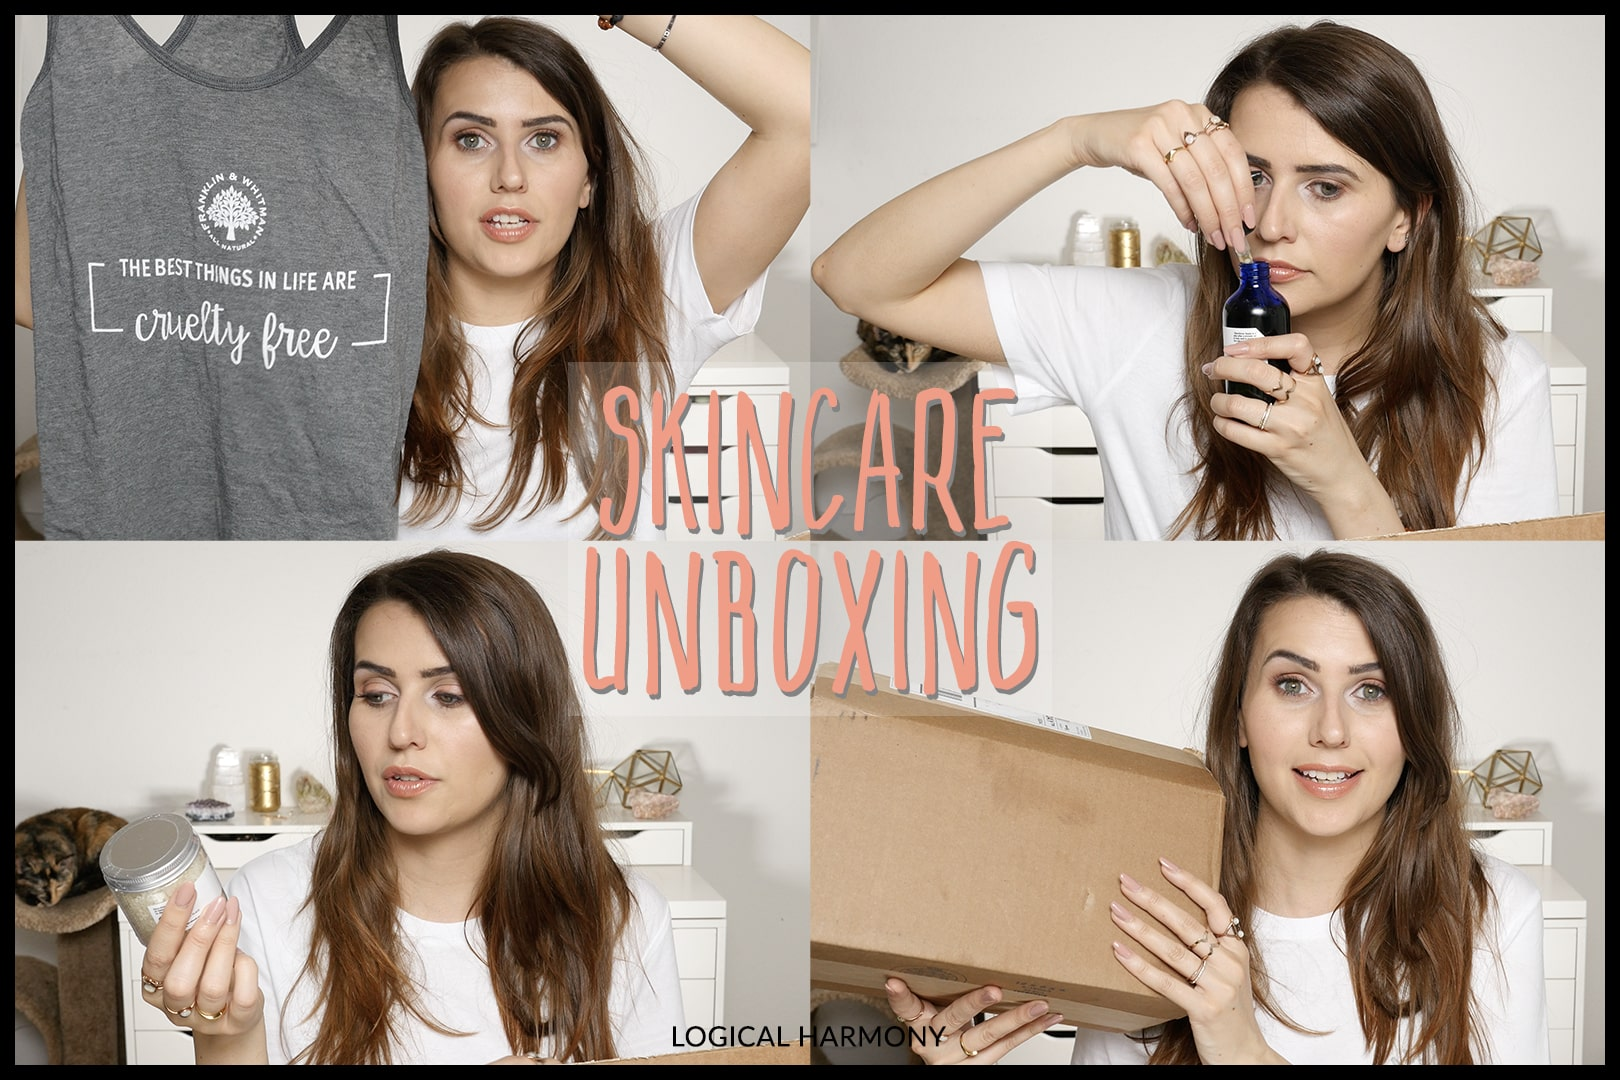 New Cruelty-Free Skincare from Franklin & Whitman Unboxing!